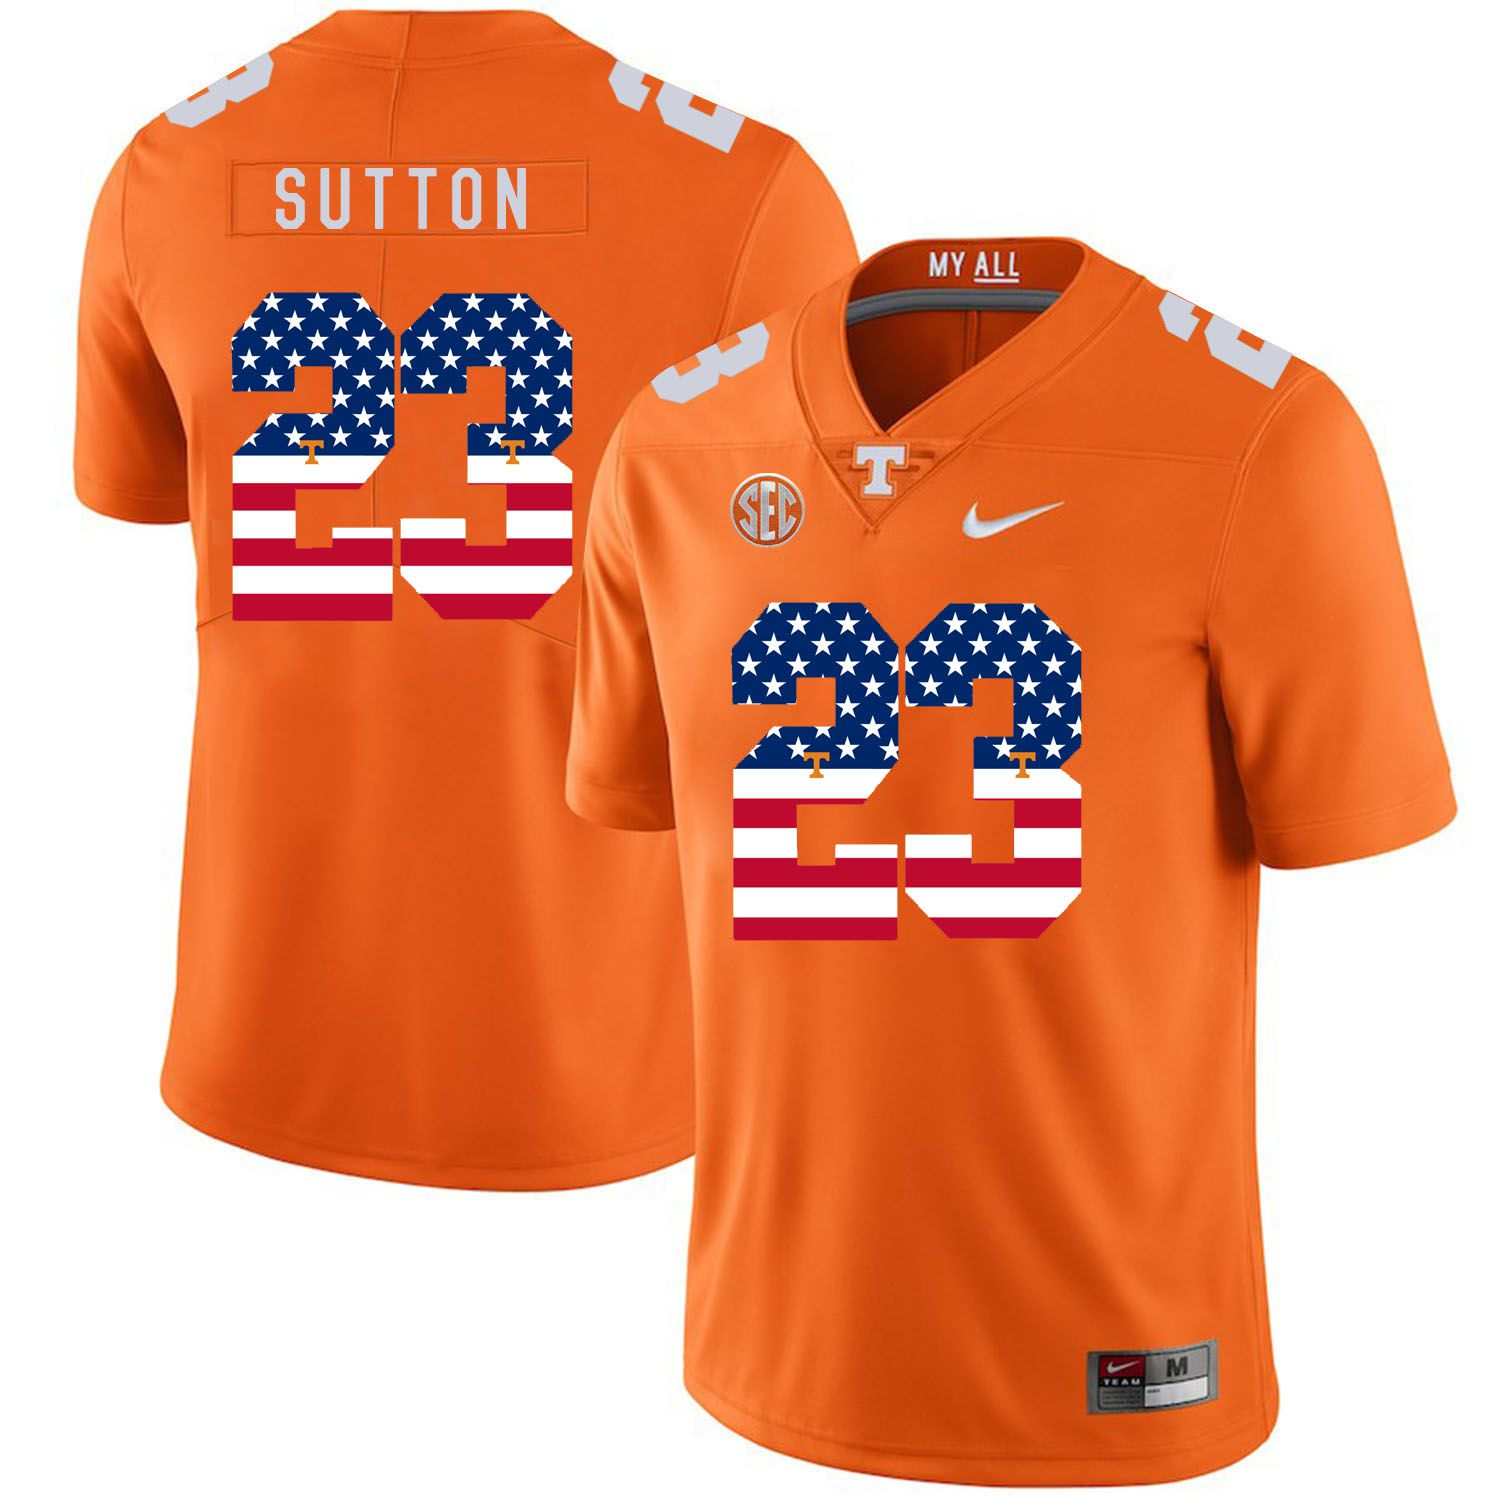 Men Tennessee Volunteers 23 Sutton Orange Flag Customized NCAA Jerseys